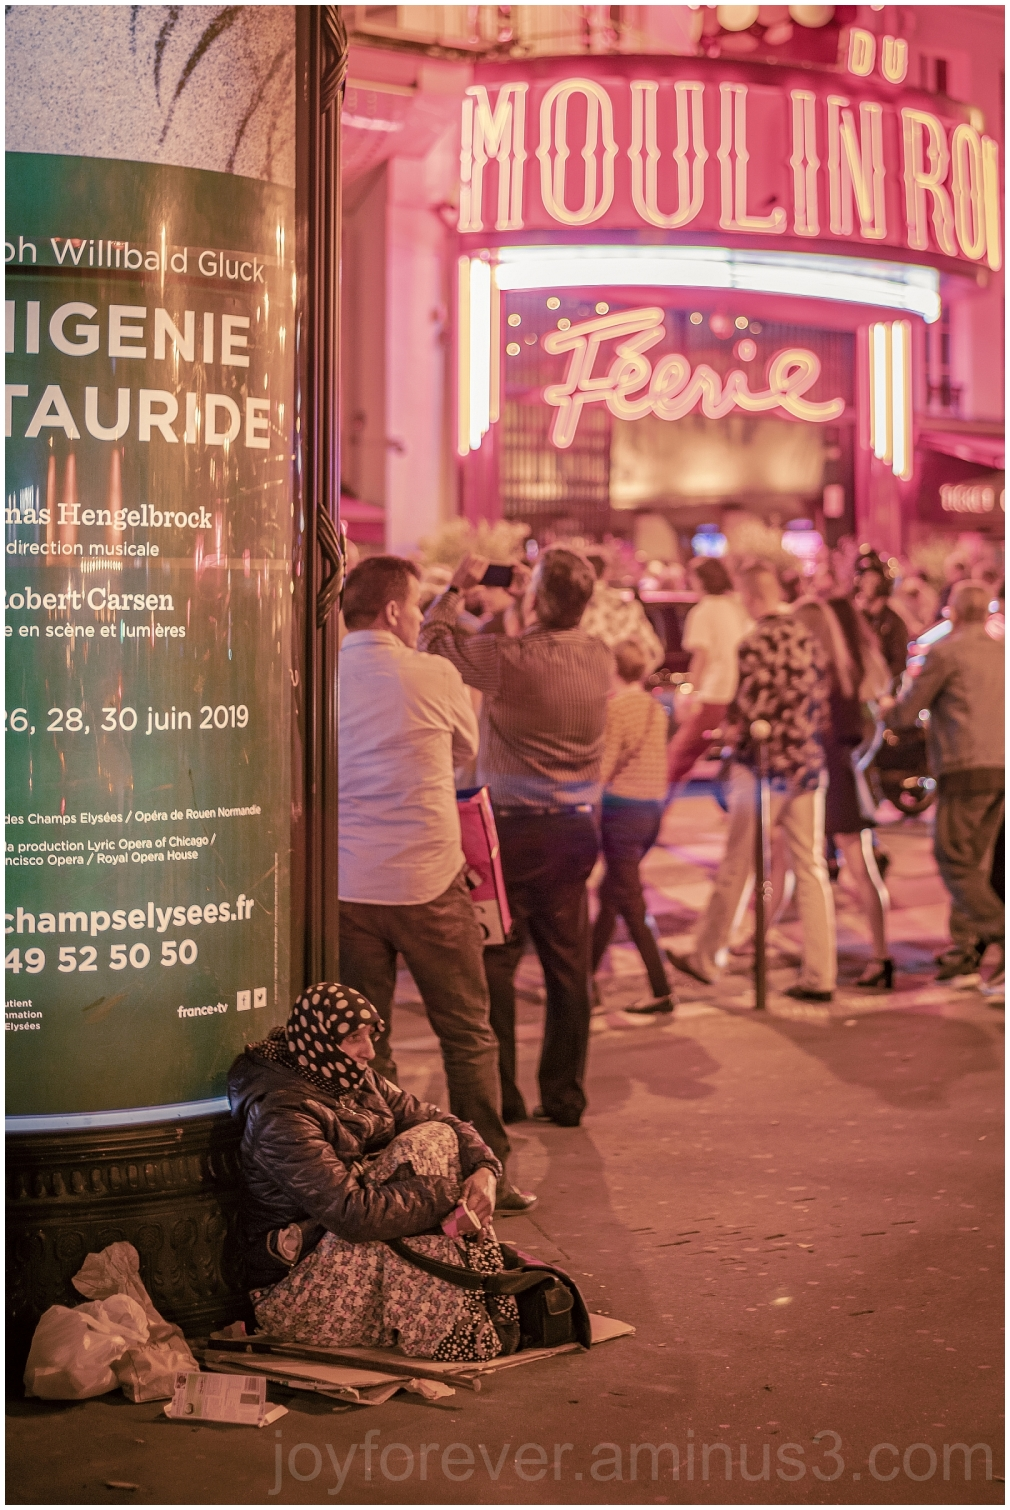 MoulinRouge nightlife homeless Paris France EU